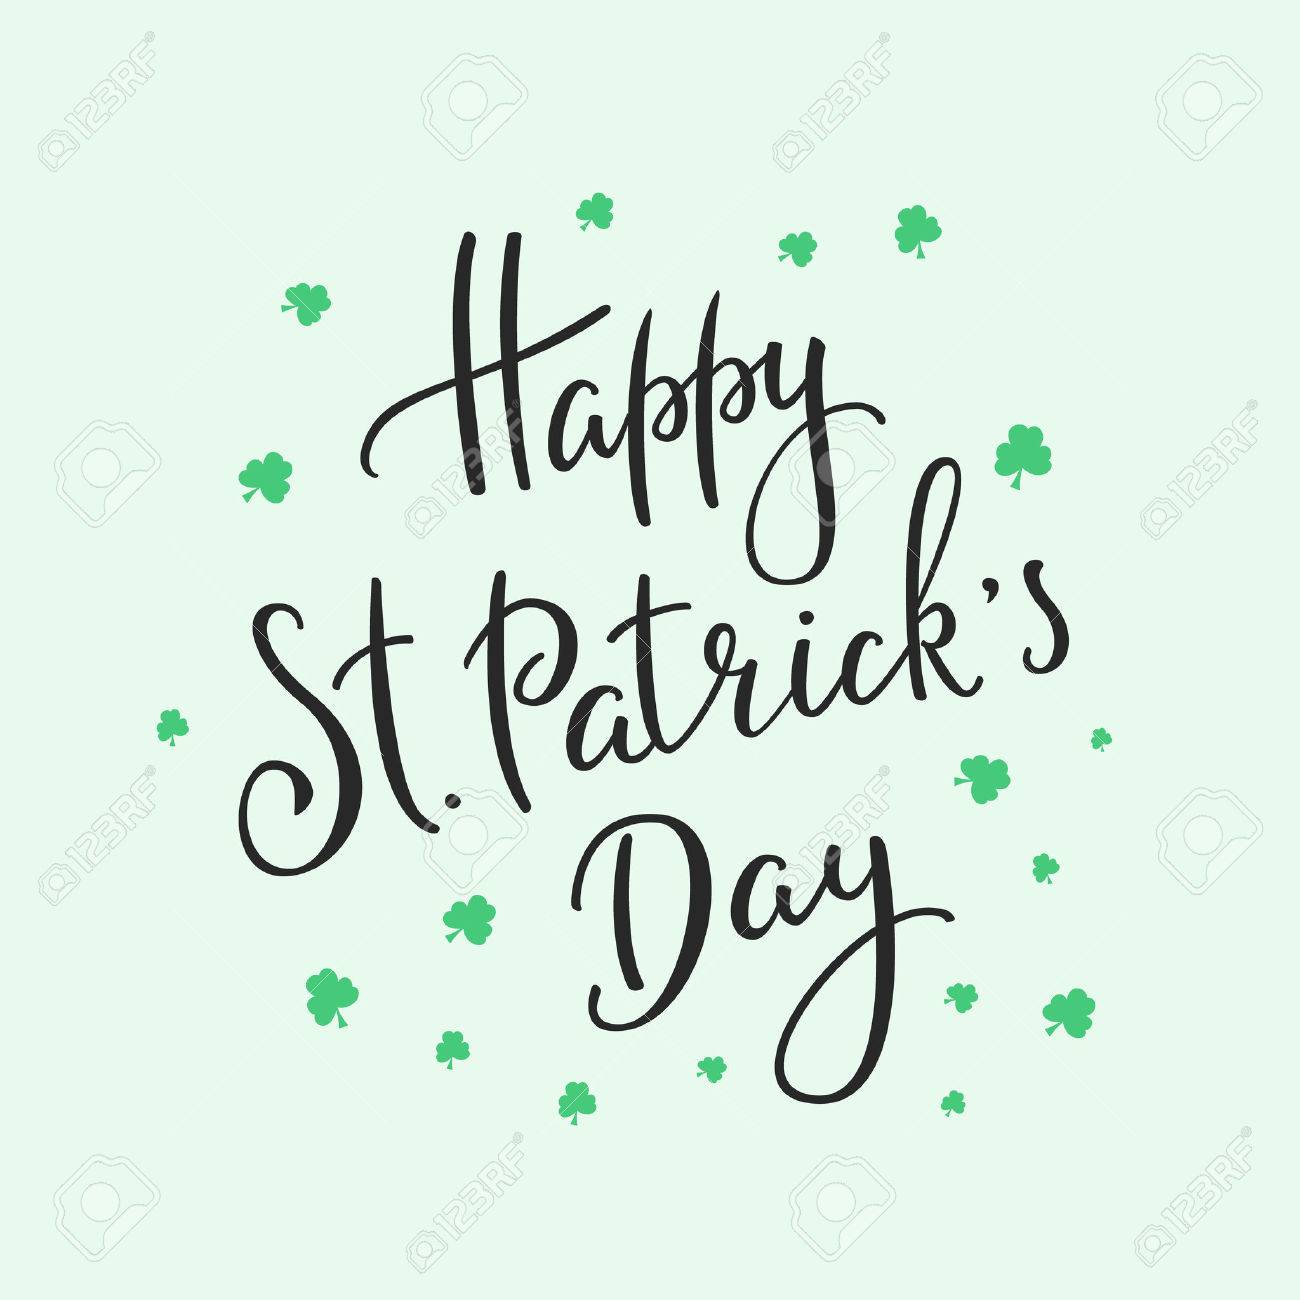 Happy St Patricks day simple lettering. Calligraphy postcard or poster graphic design lettering element. Hand written calligraphy style Saint Patrick postcard design. Photography overlay sign detail. - 52370090